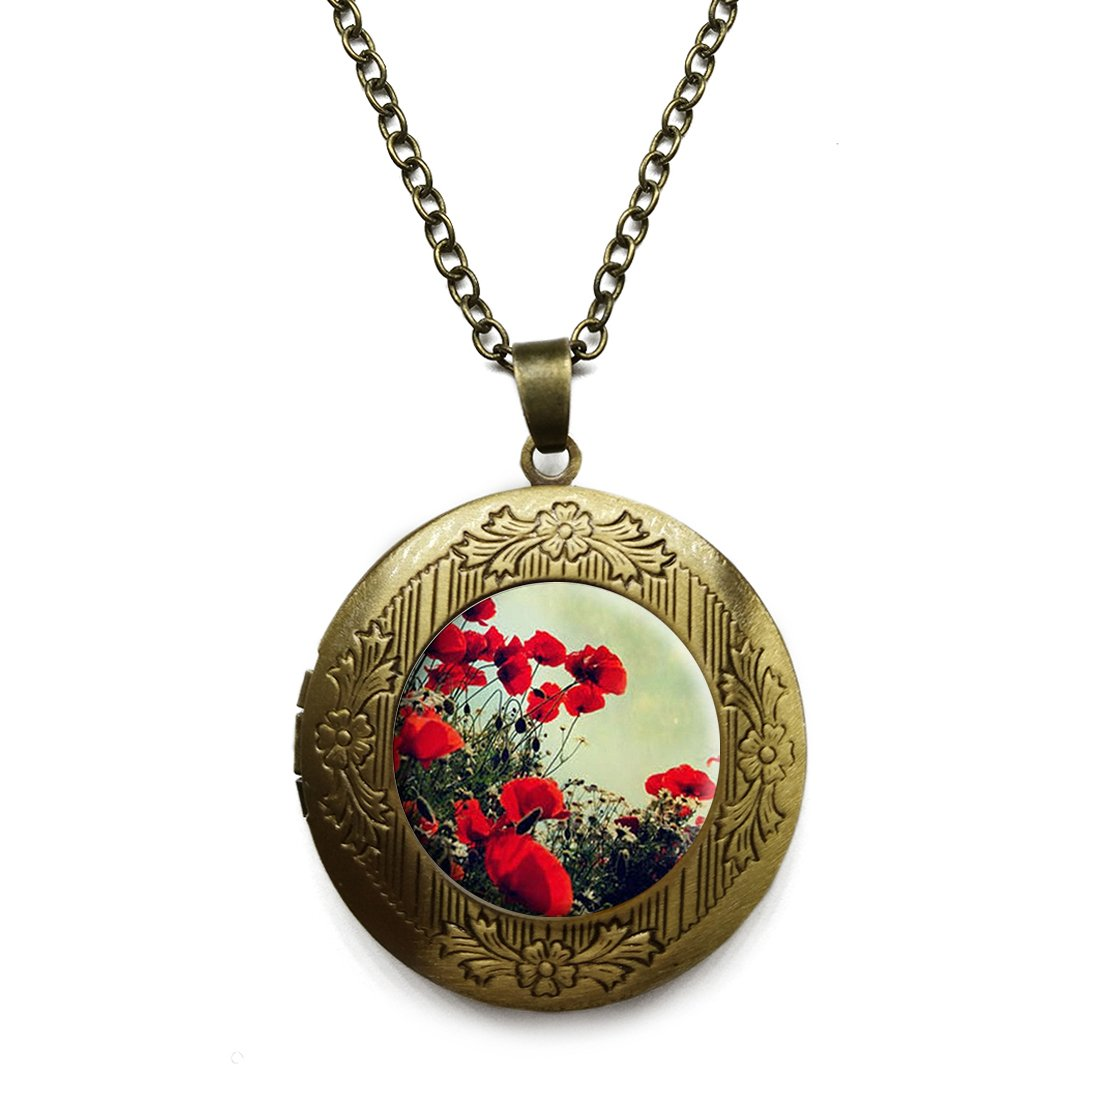 Vintage Bronze Tone Locket Picture Pendant Necklace Bright Color Flower Included Free Brass Chain Gifts Personalized LooPoP CXC0622LooP-KF-LSZBS-0207